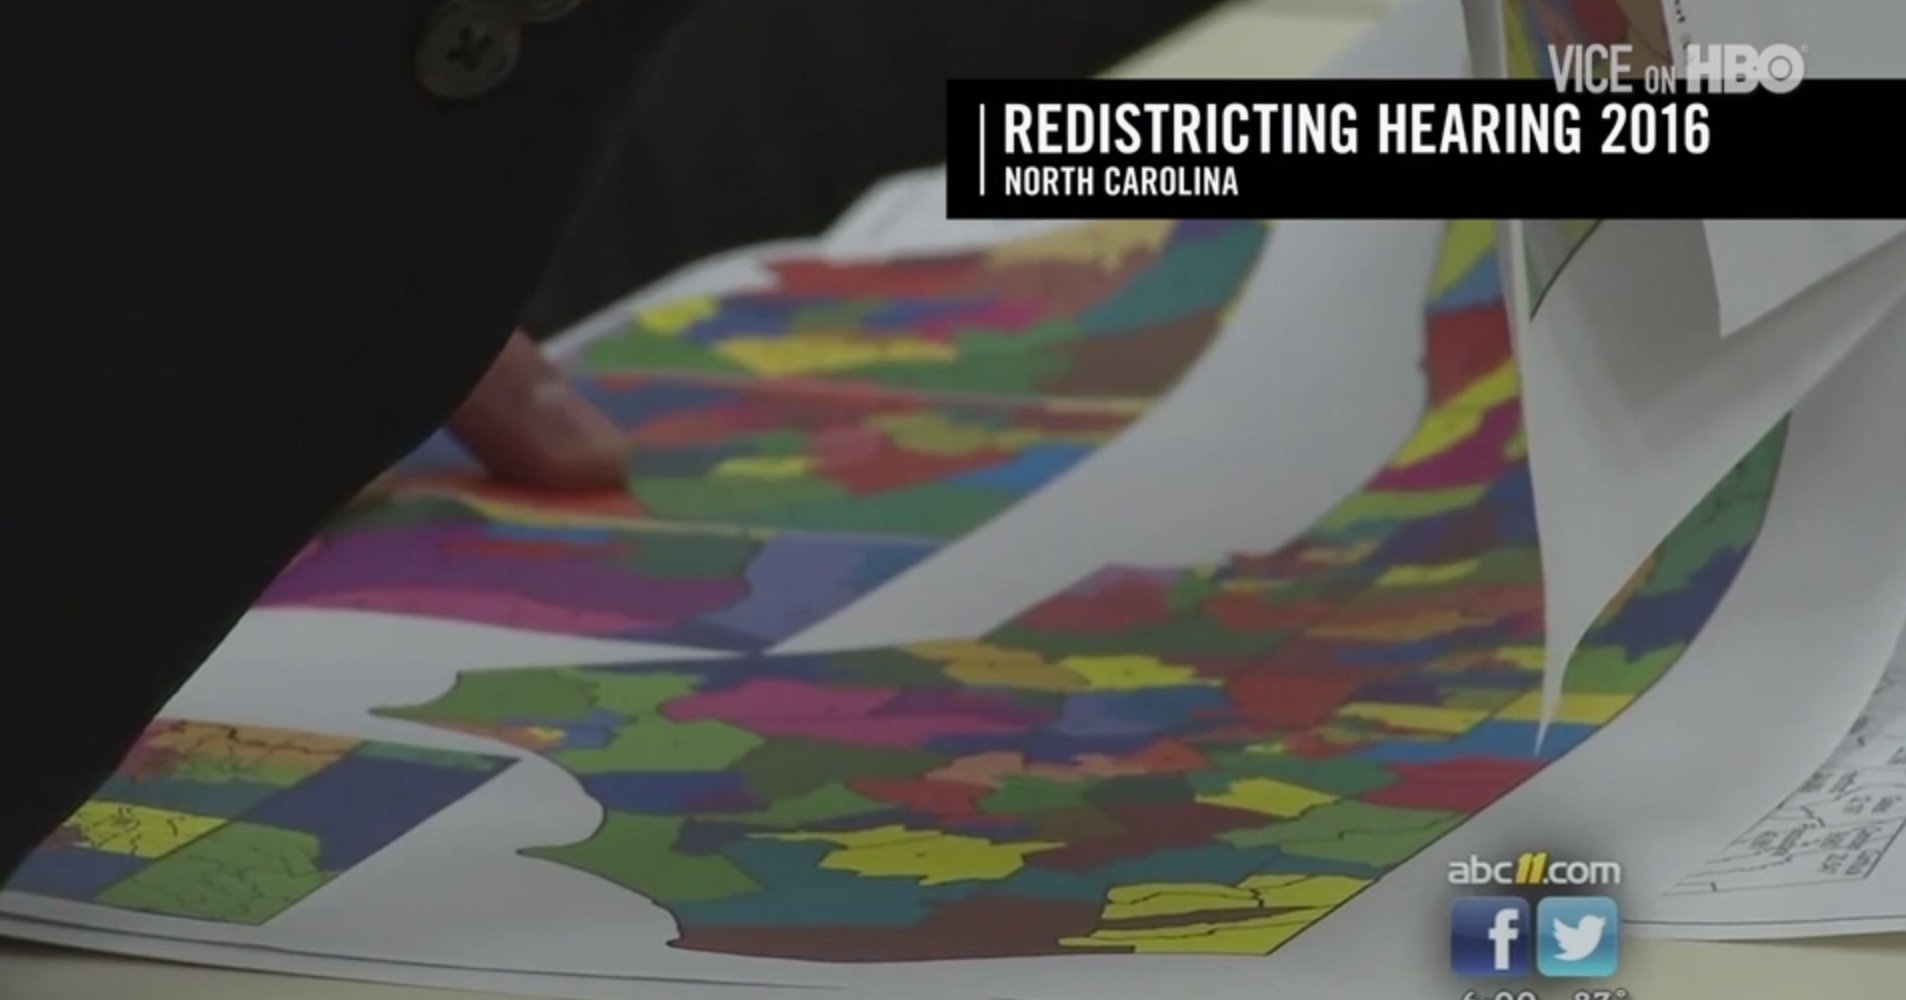 Asheville residents 'feel their voices have been eradicated by gerrymandering' #VICEonHBO https://t.co/btgvGvsD7Y